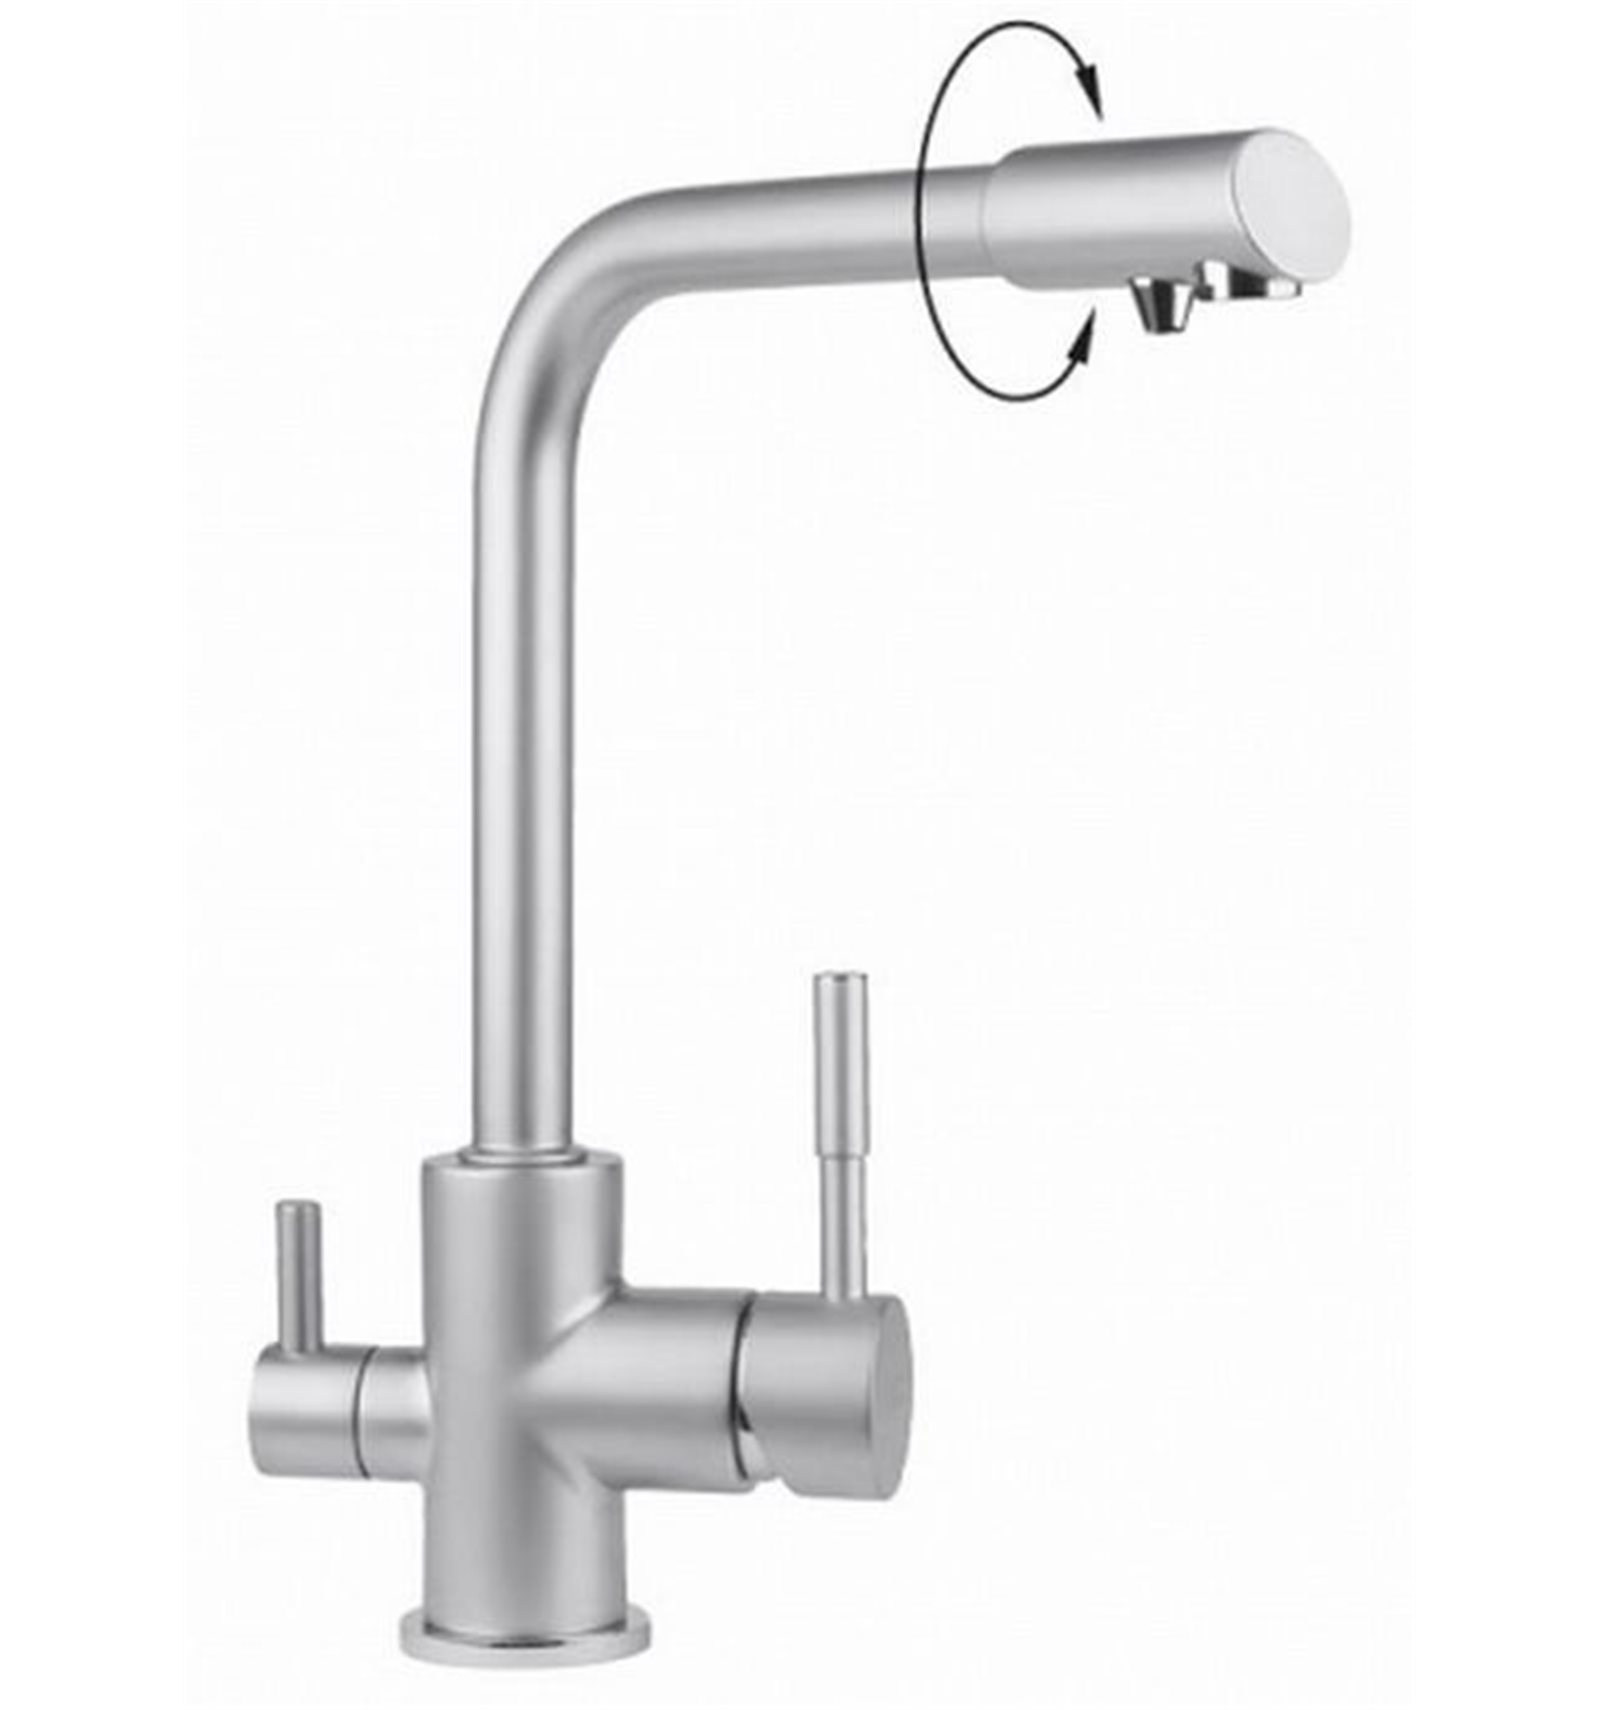 triflow dolce faucet filter faucets icon water lti tap way brita